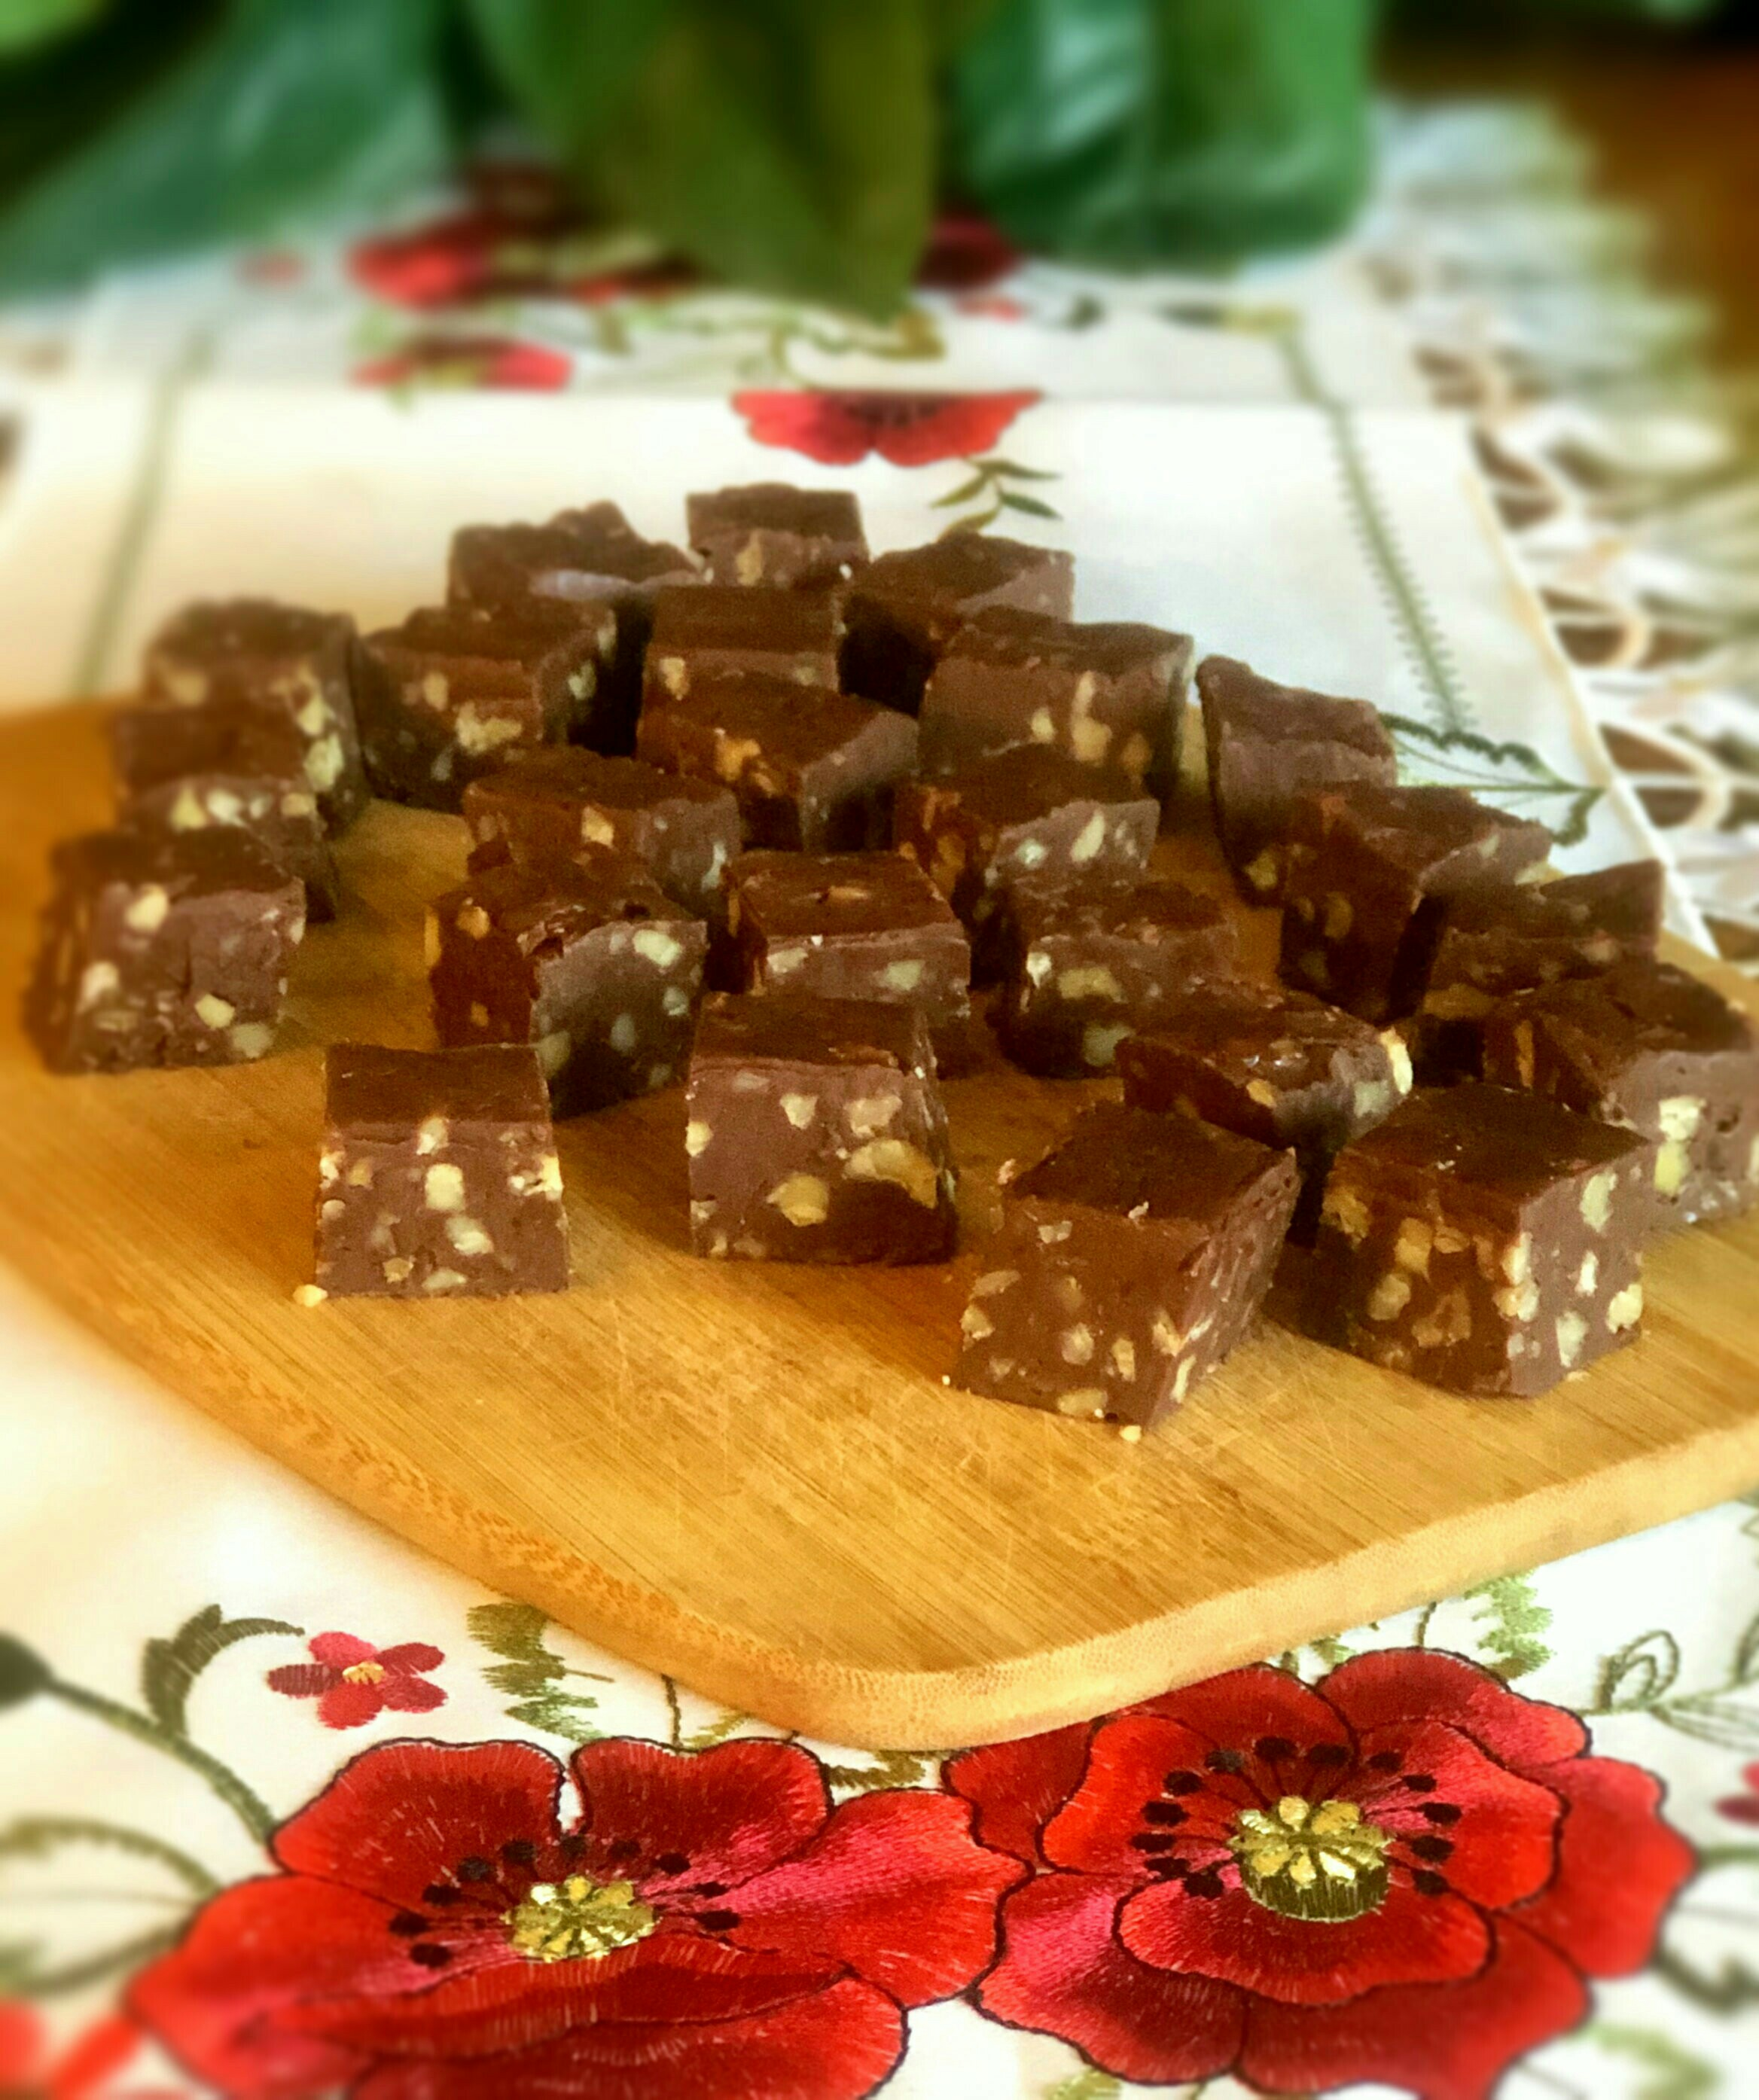 One Bowl Chocolate Fudge with Pecans